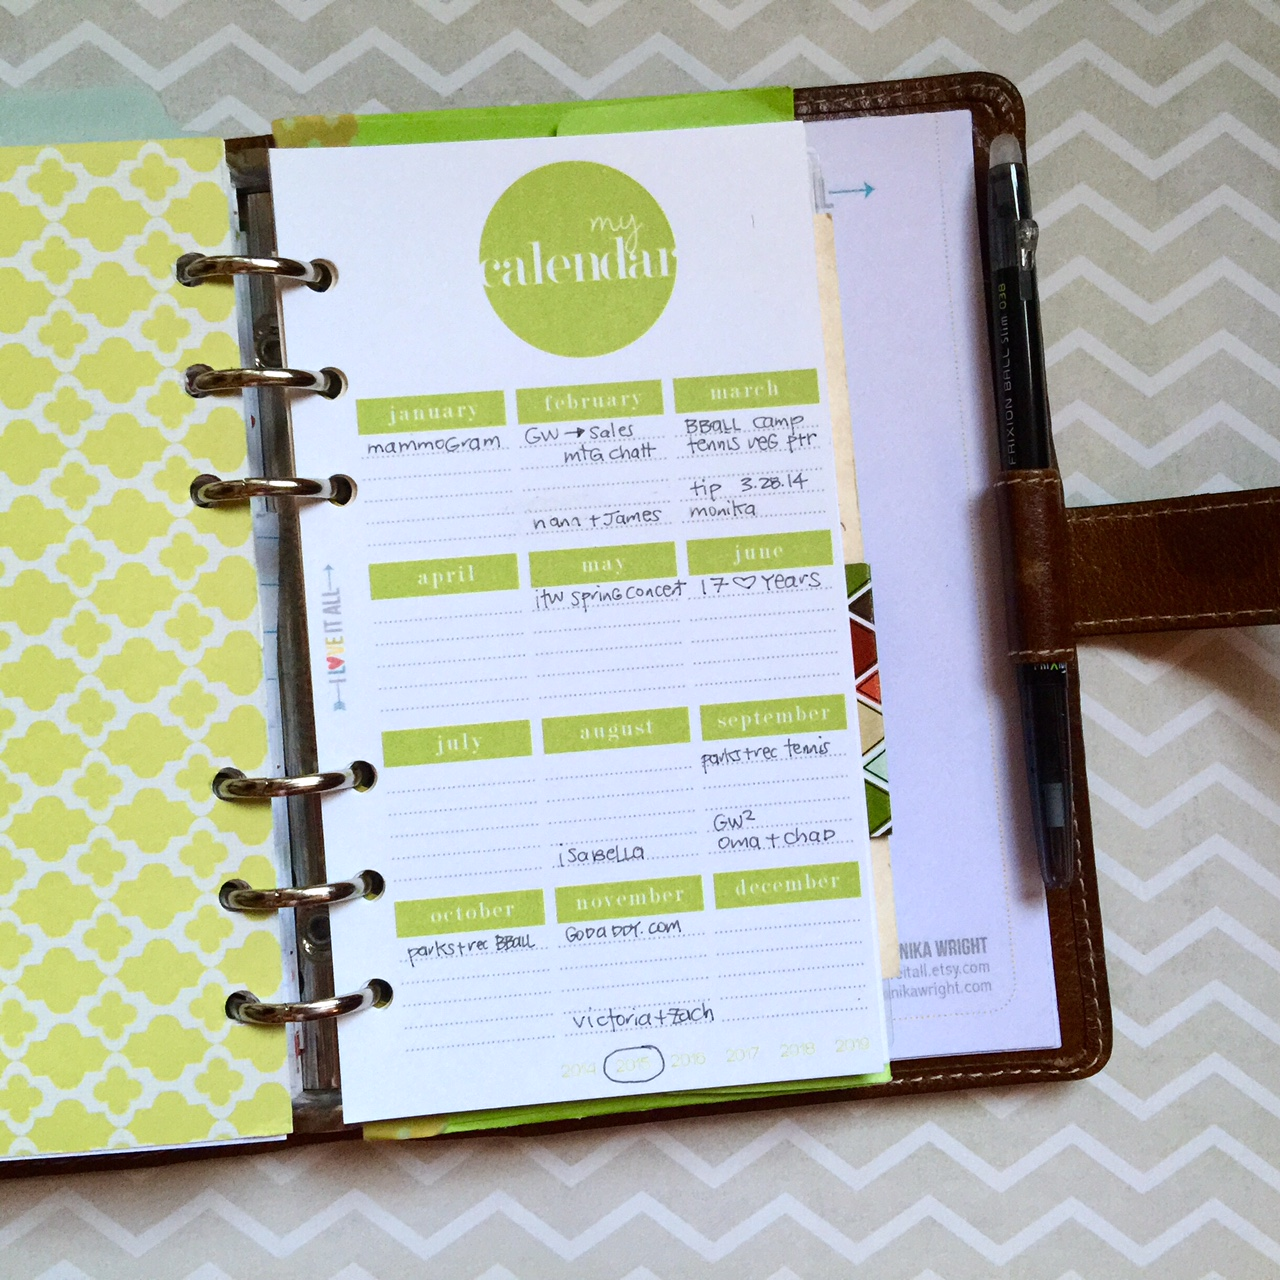 #ochremalden #filofax #printable #organization #planner #lists #calendar